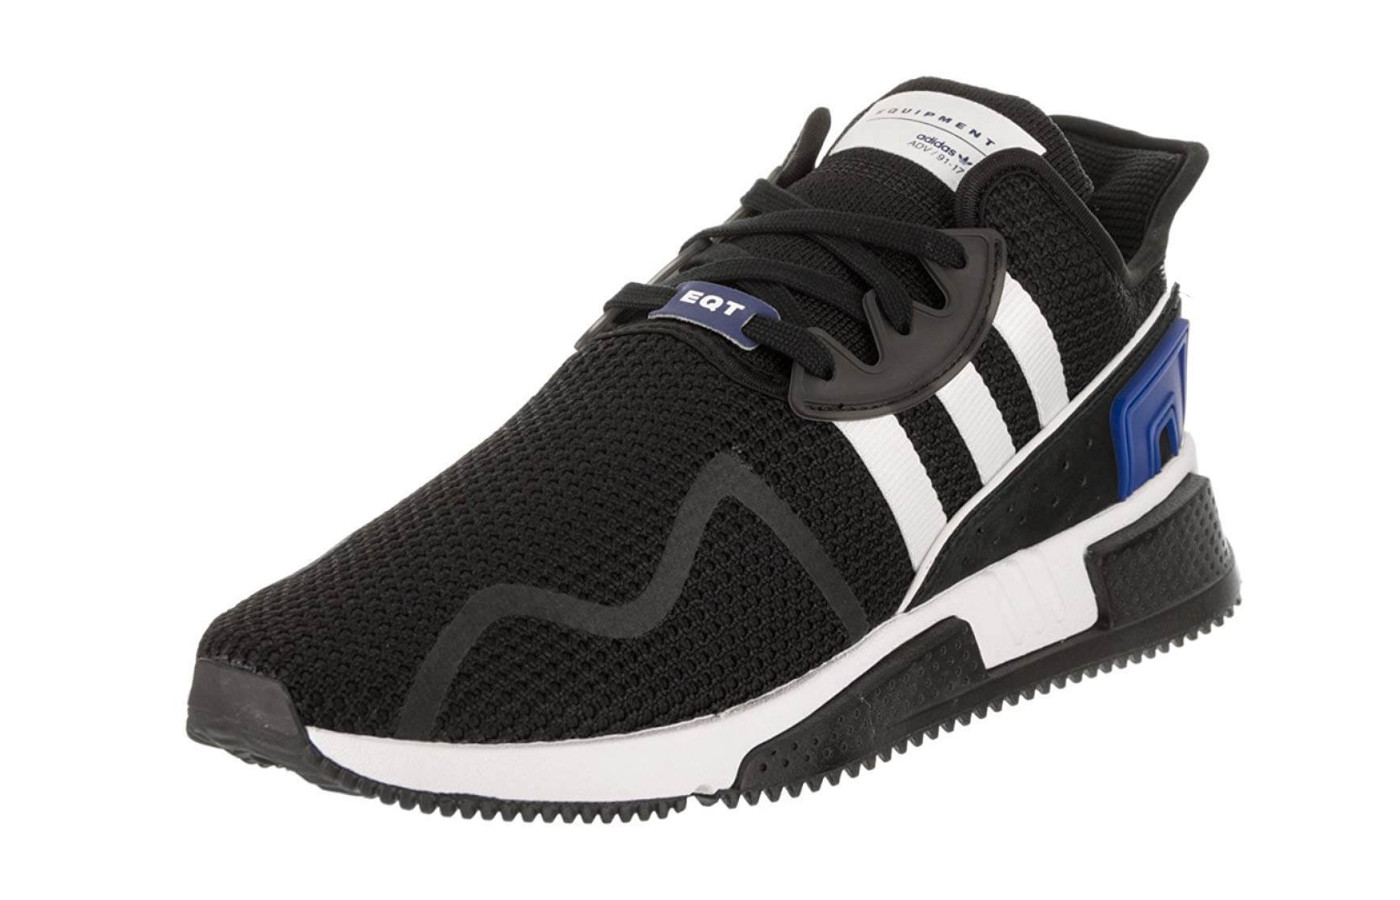 pretty nice 96c7d 57ac1 An angled view of the Adidas EQT Cushion ADV.